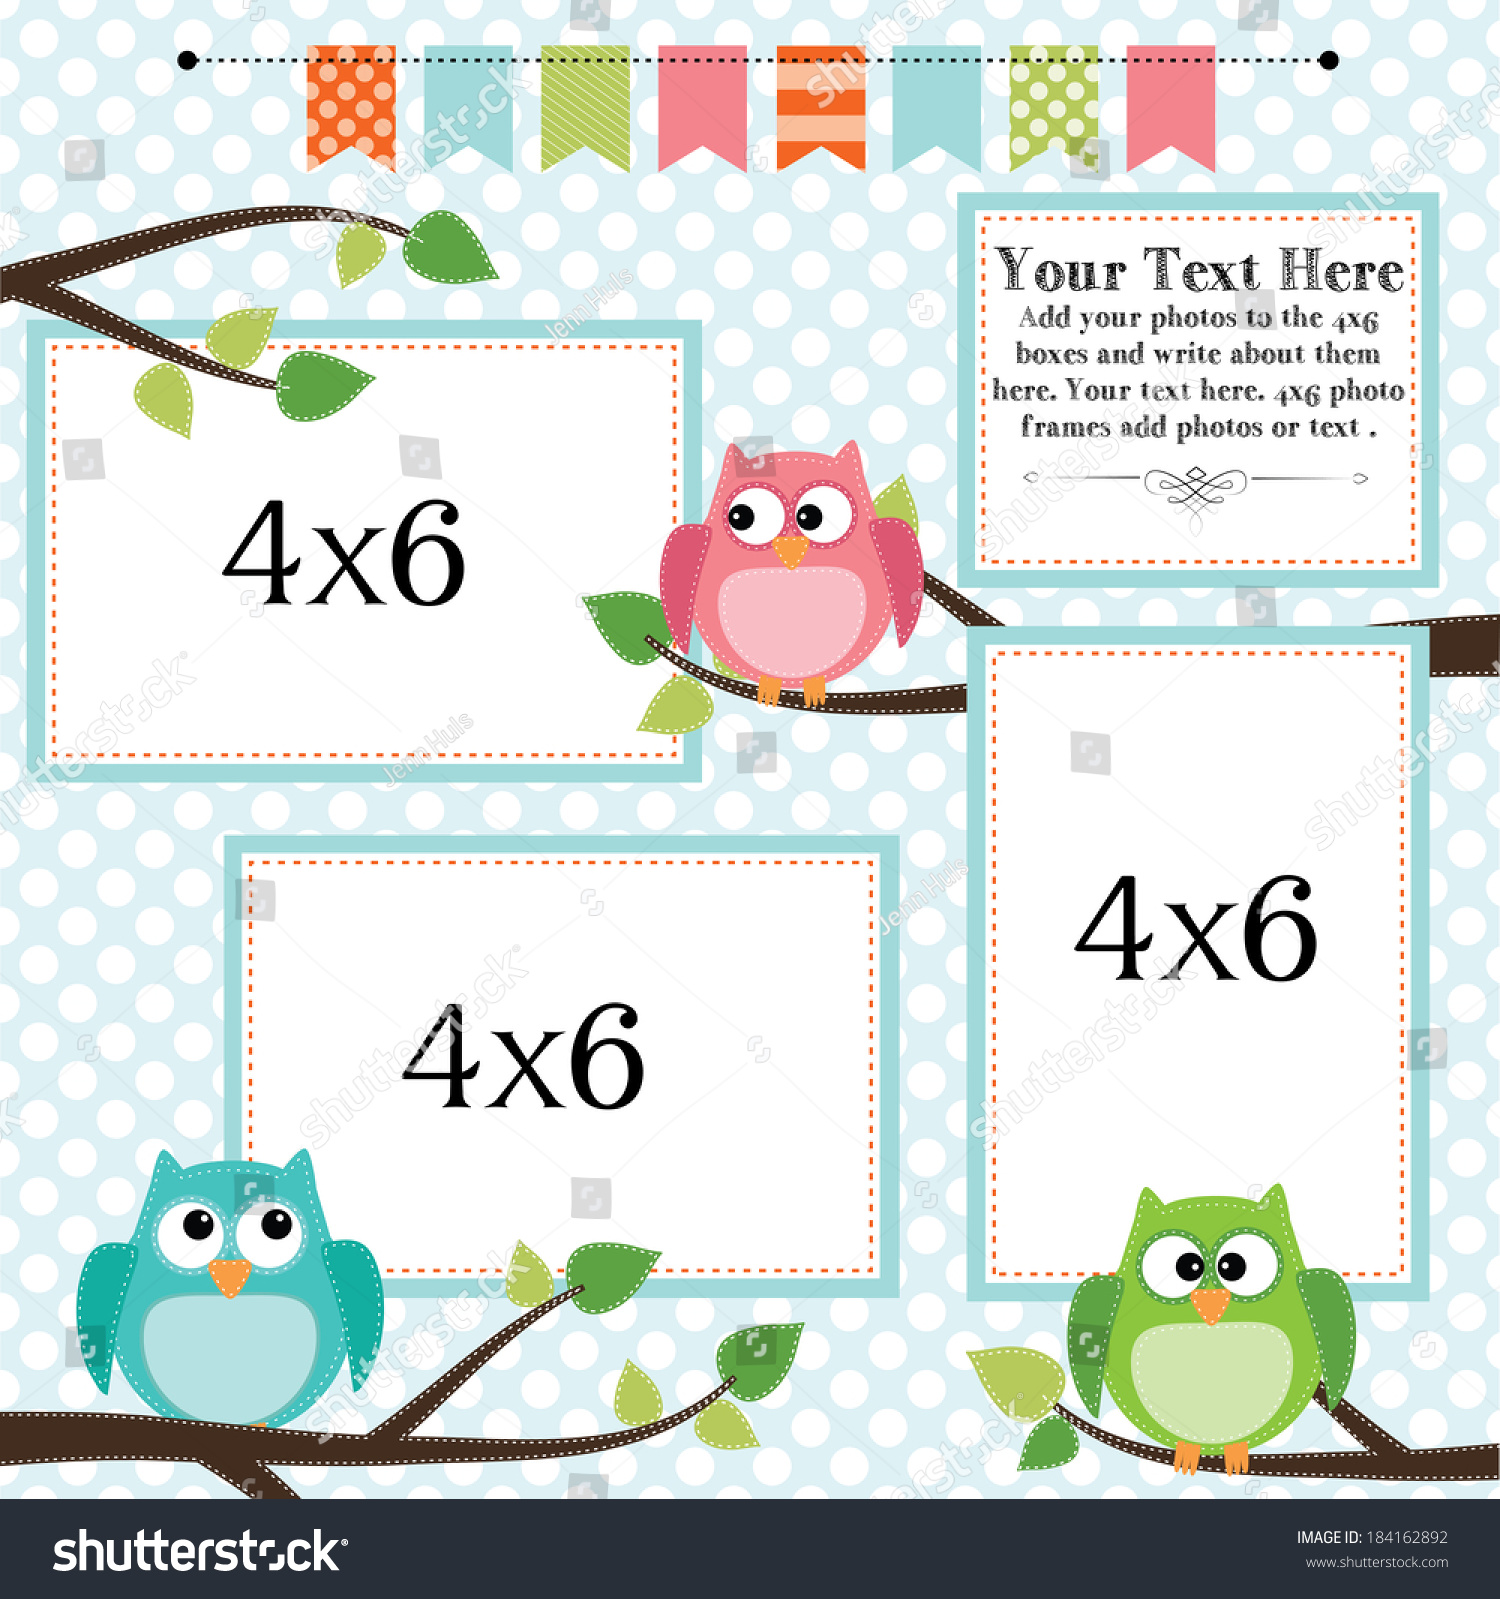 owl scrapbooking template with banner or bunting and 4x6 frames for photos or text vector